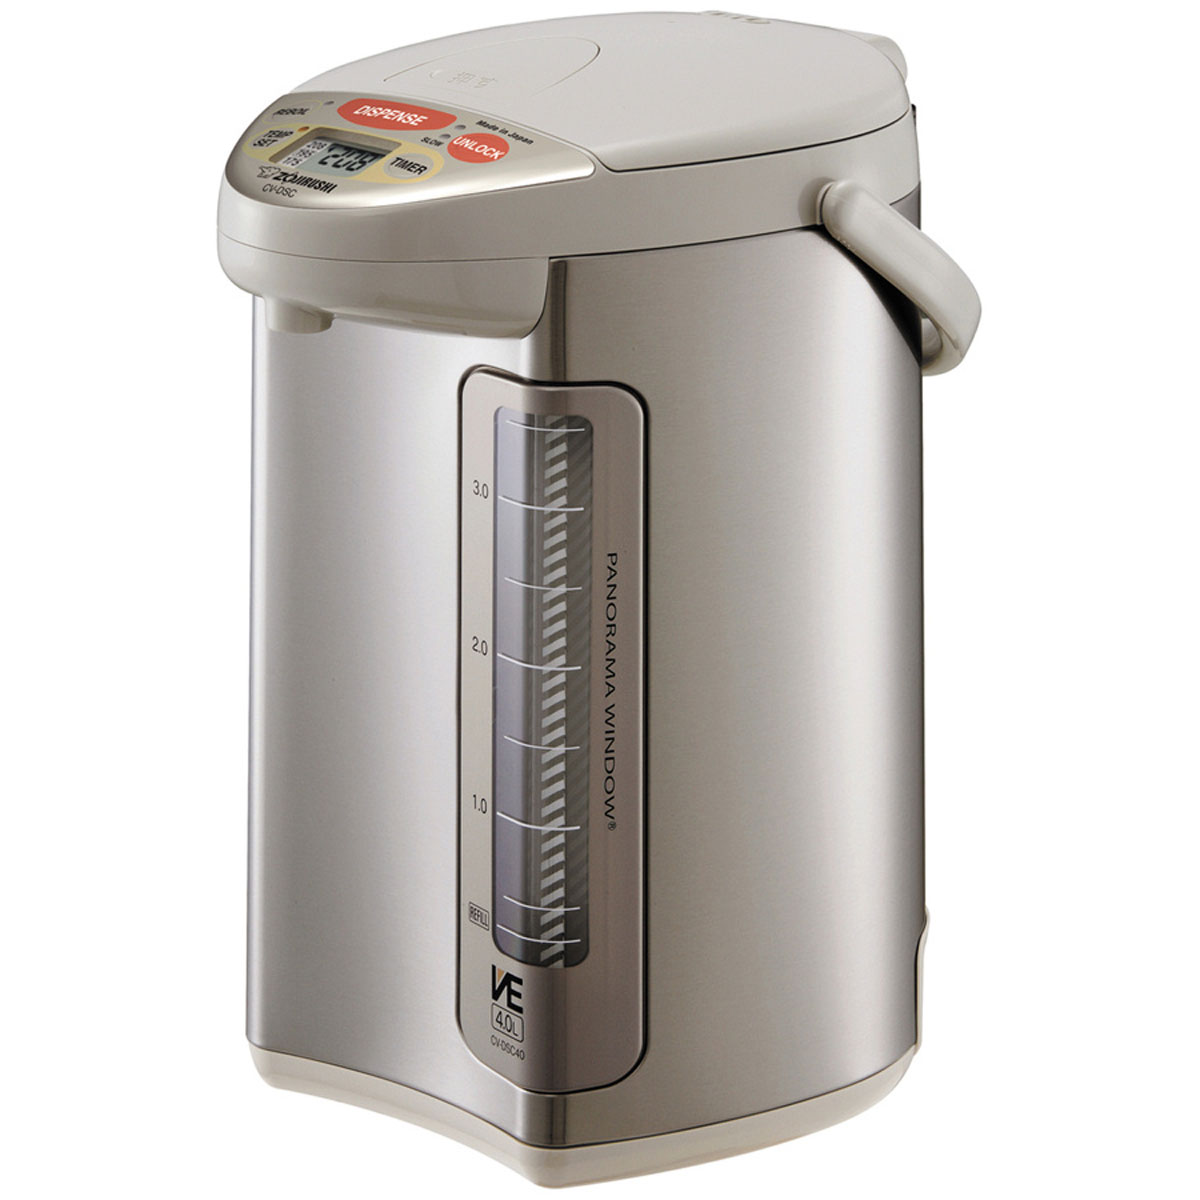 Zojirushi Ve Hybrid Stainless Steel Water Boiler Amp Warmer